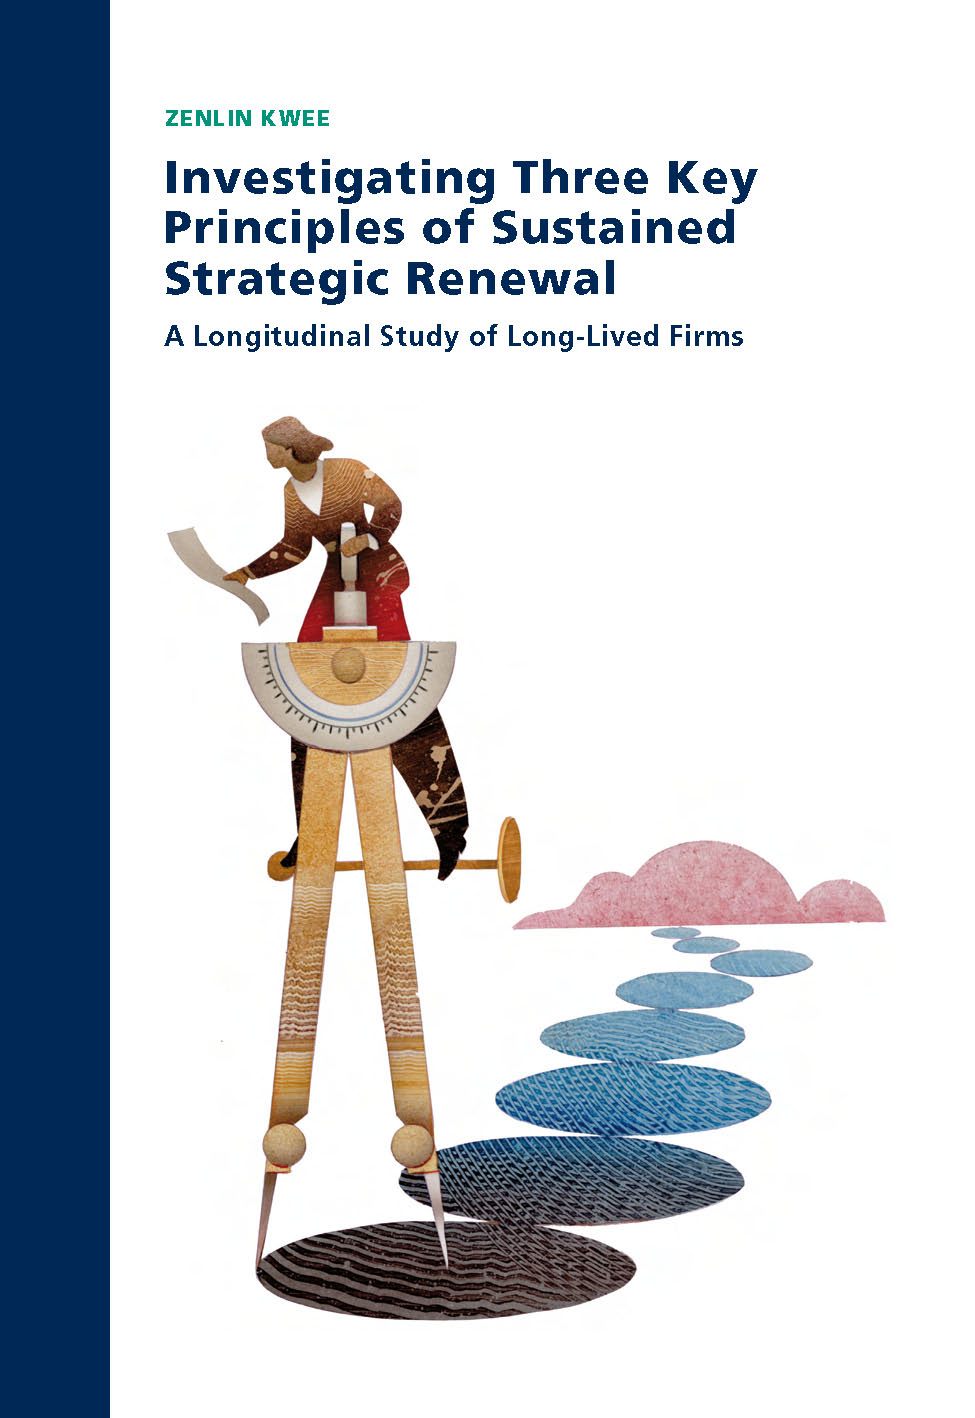 Investigating Three Key Principles of Sustained Strategic Renewal: A Longitudinal Study of Long-Lived Firms